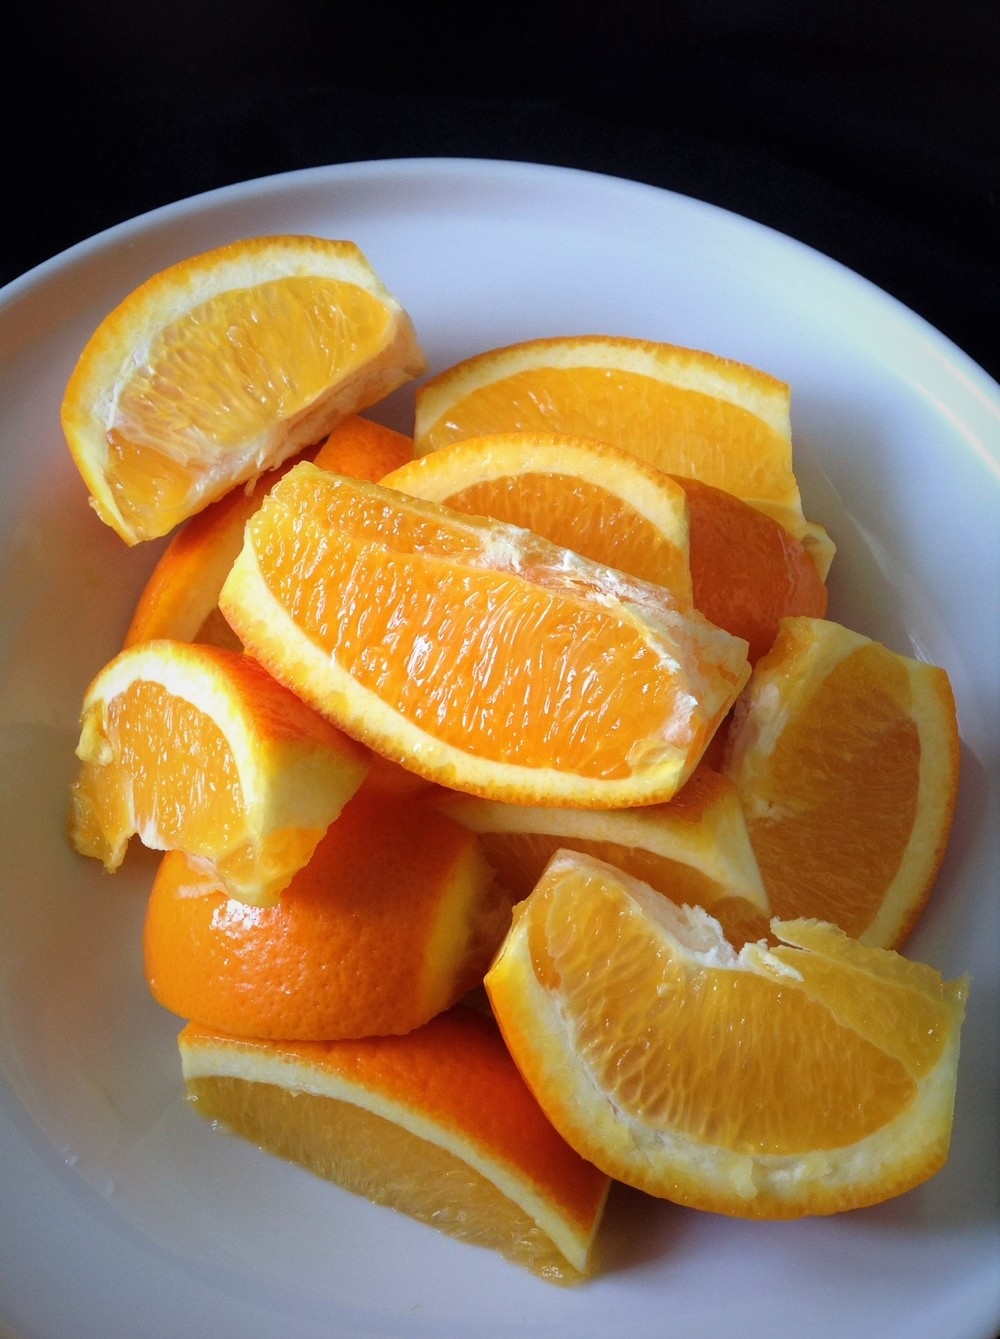 Keep in Eye's View: Fresh Orange Slices